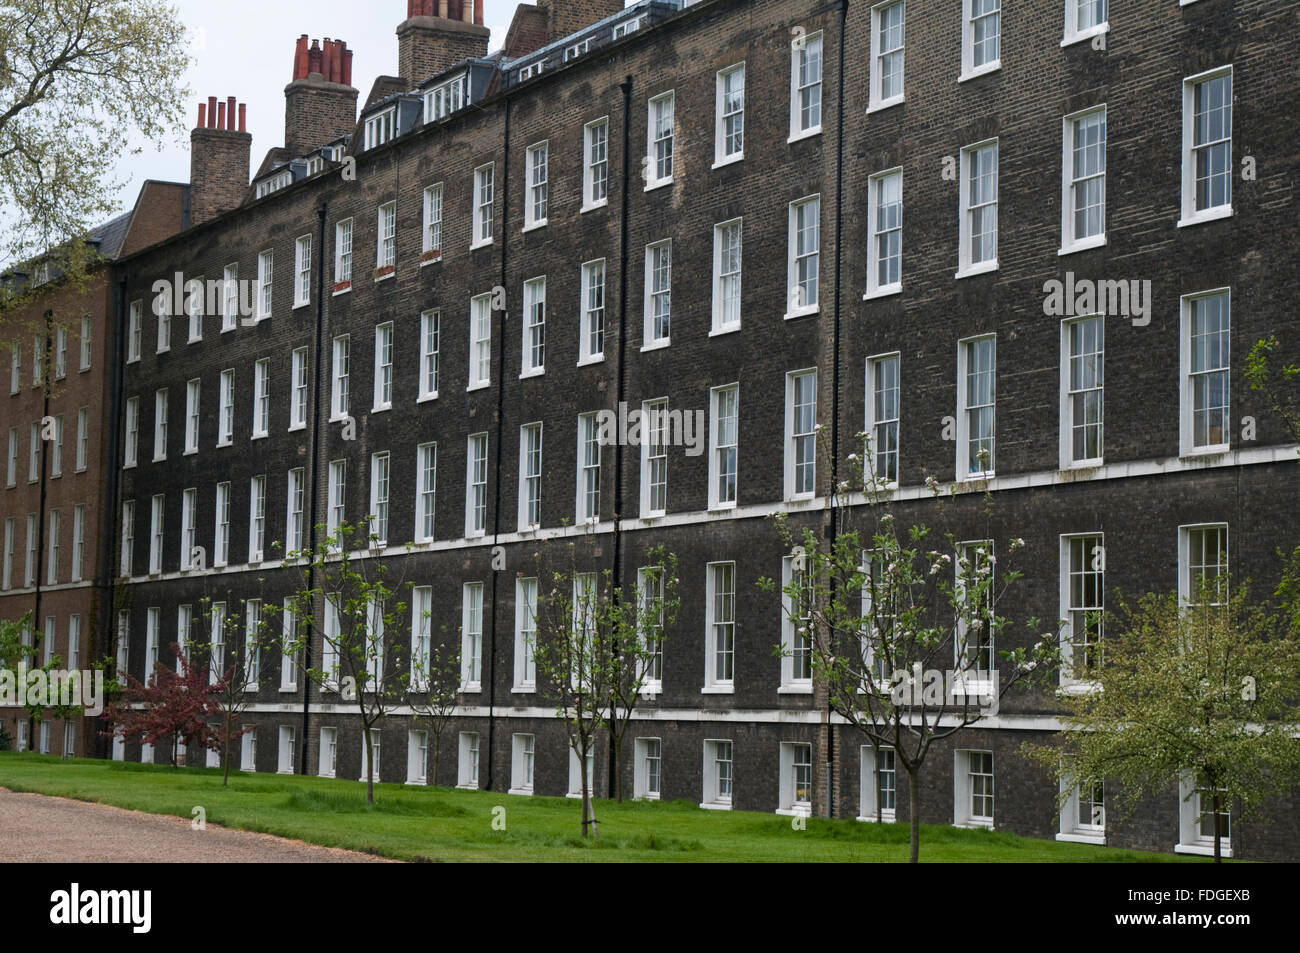 Buildings at Gray's Inn, London, one of the four Inns of  Court of the British legal system - Stock Image